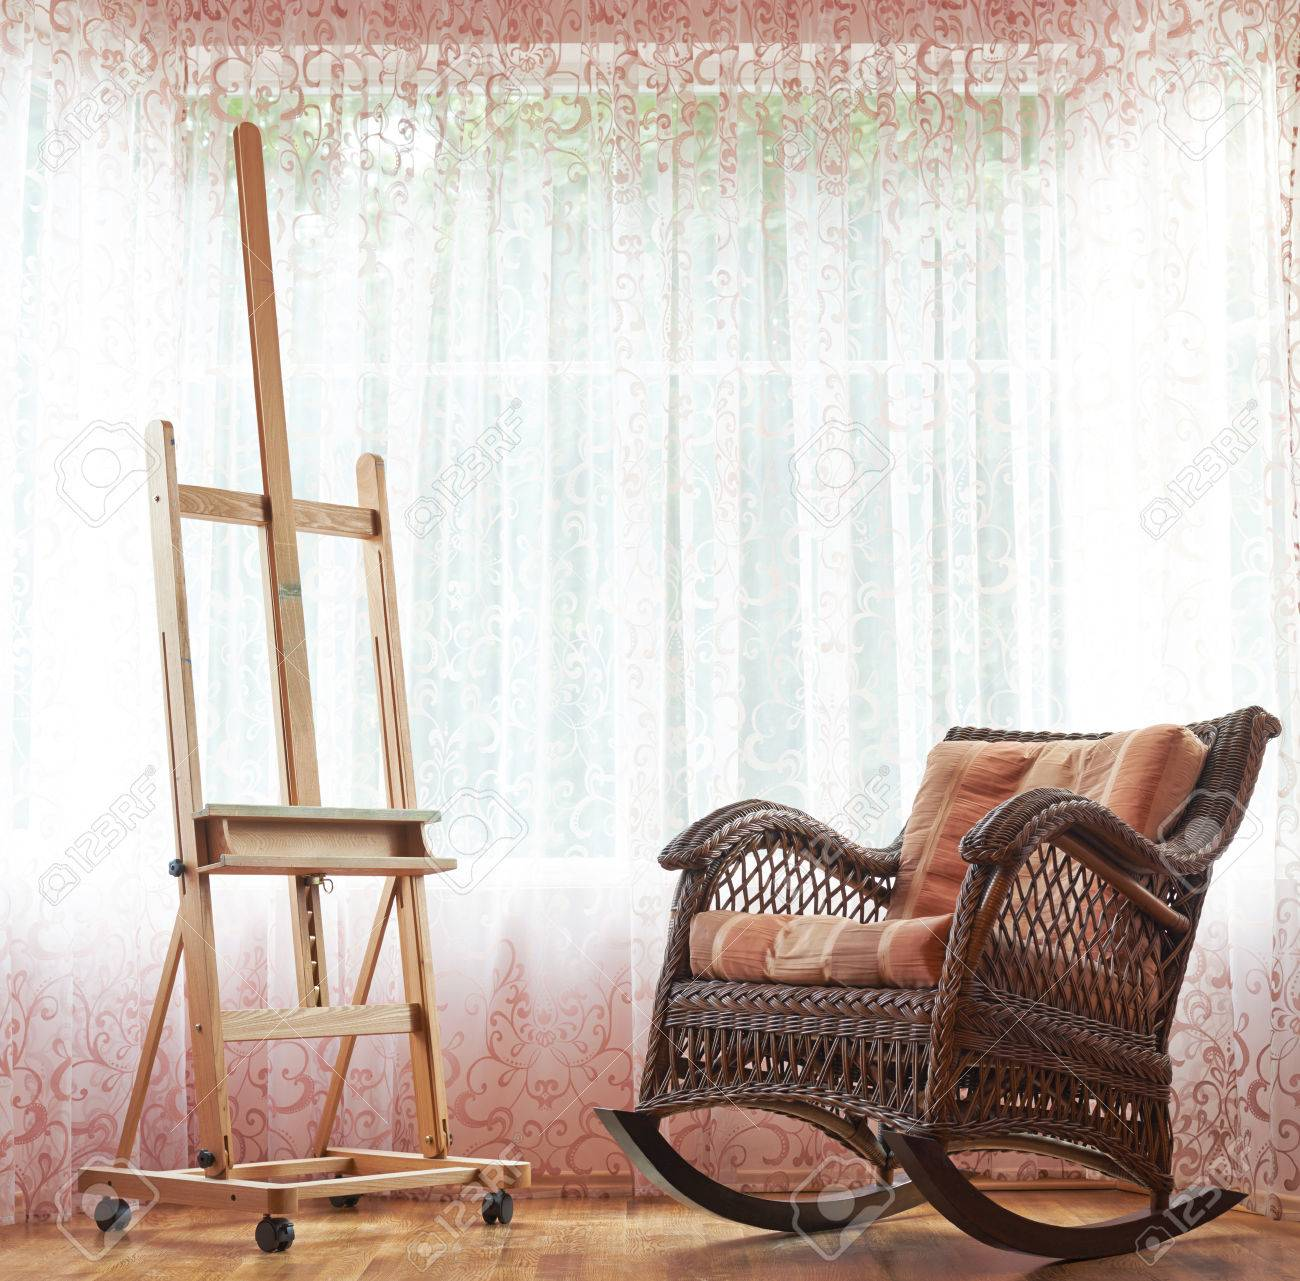 Wicker Rocking Chair And Wooden Easel Composition Against The